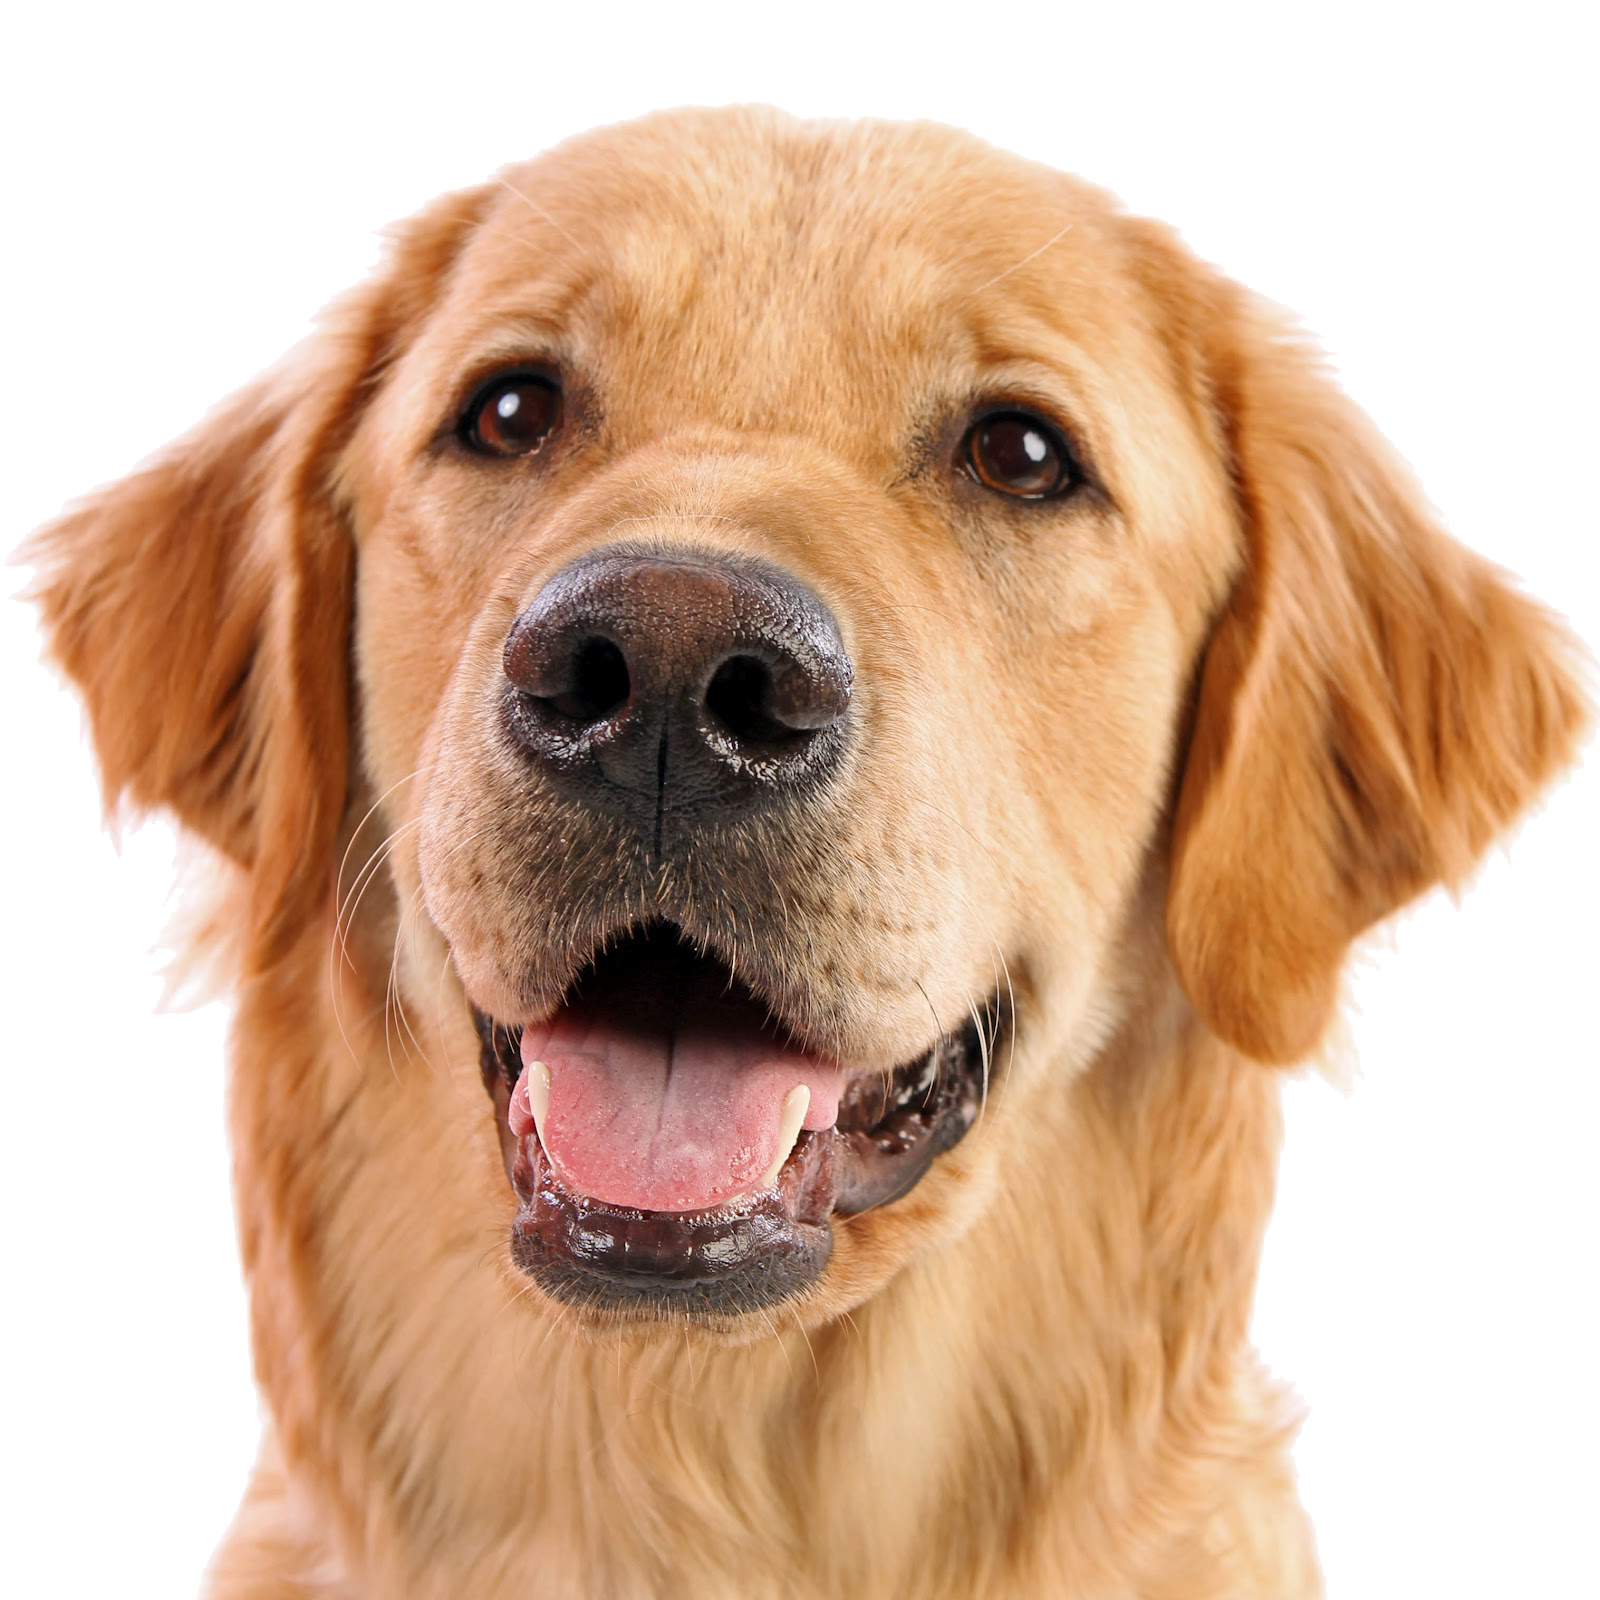 Dog face png. Image with transparent background